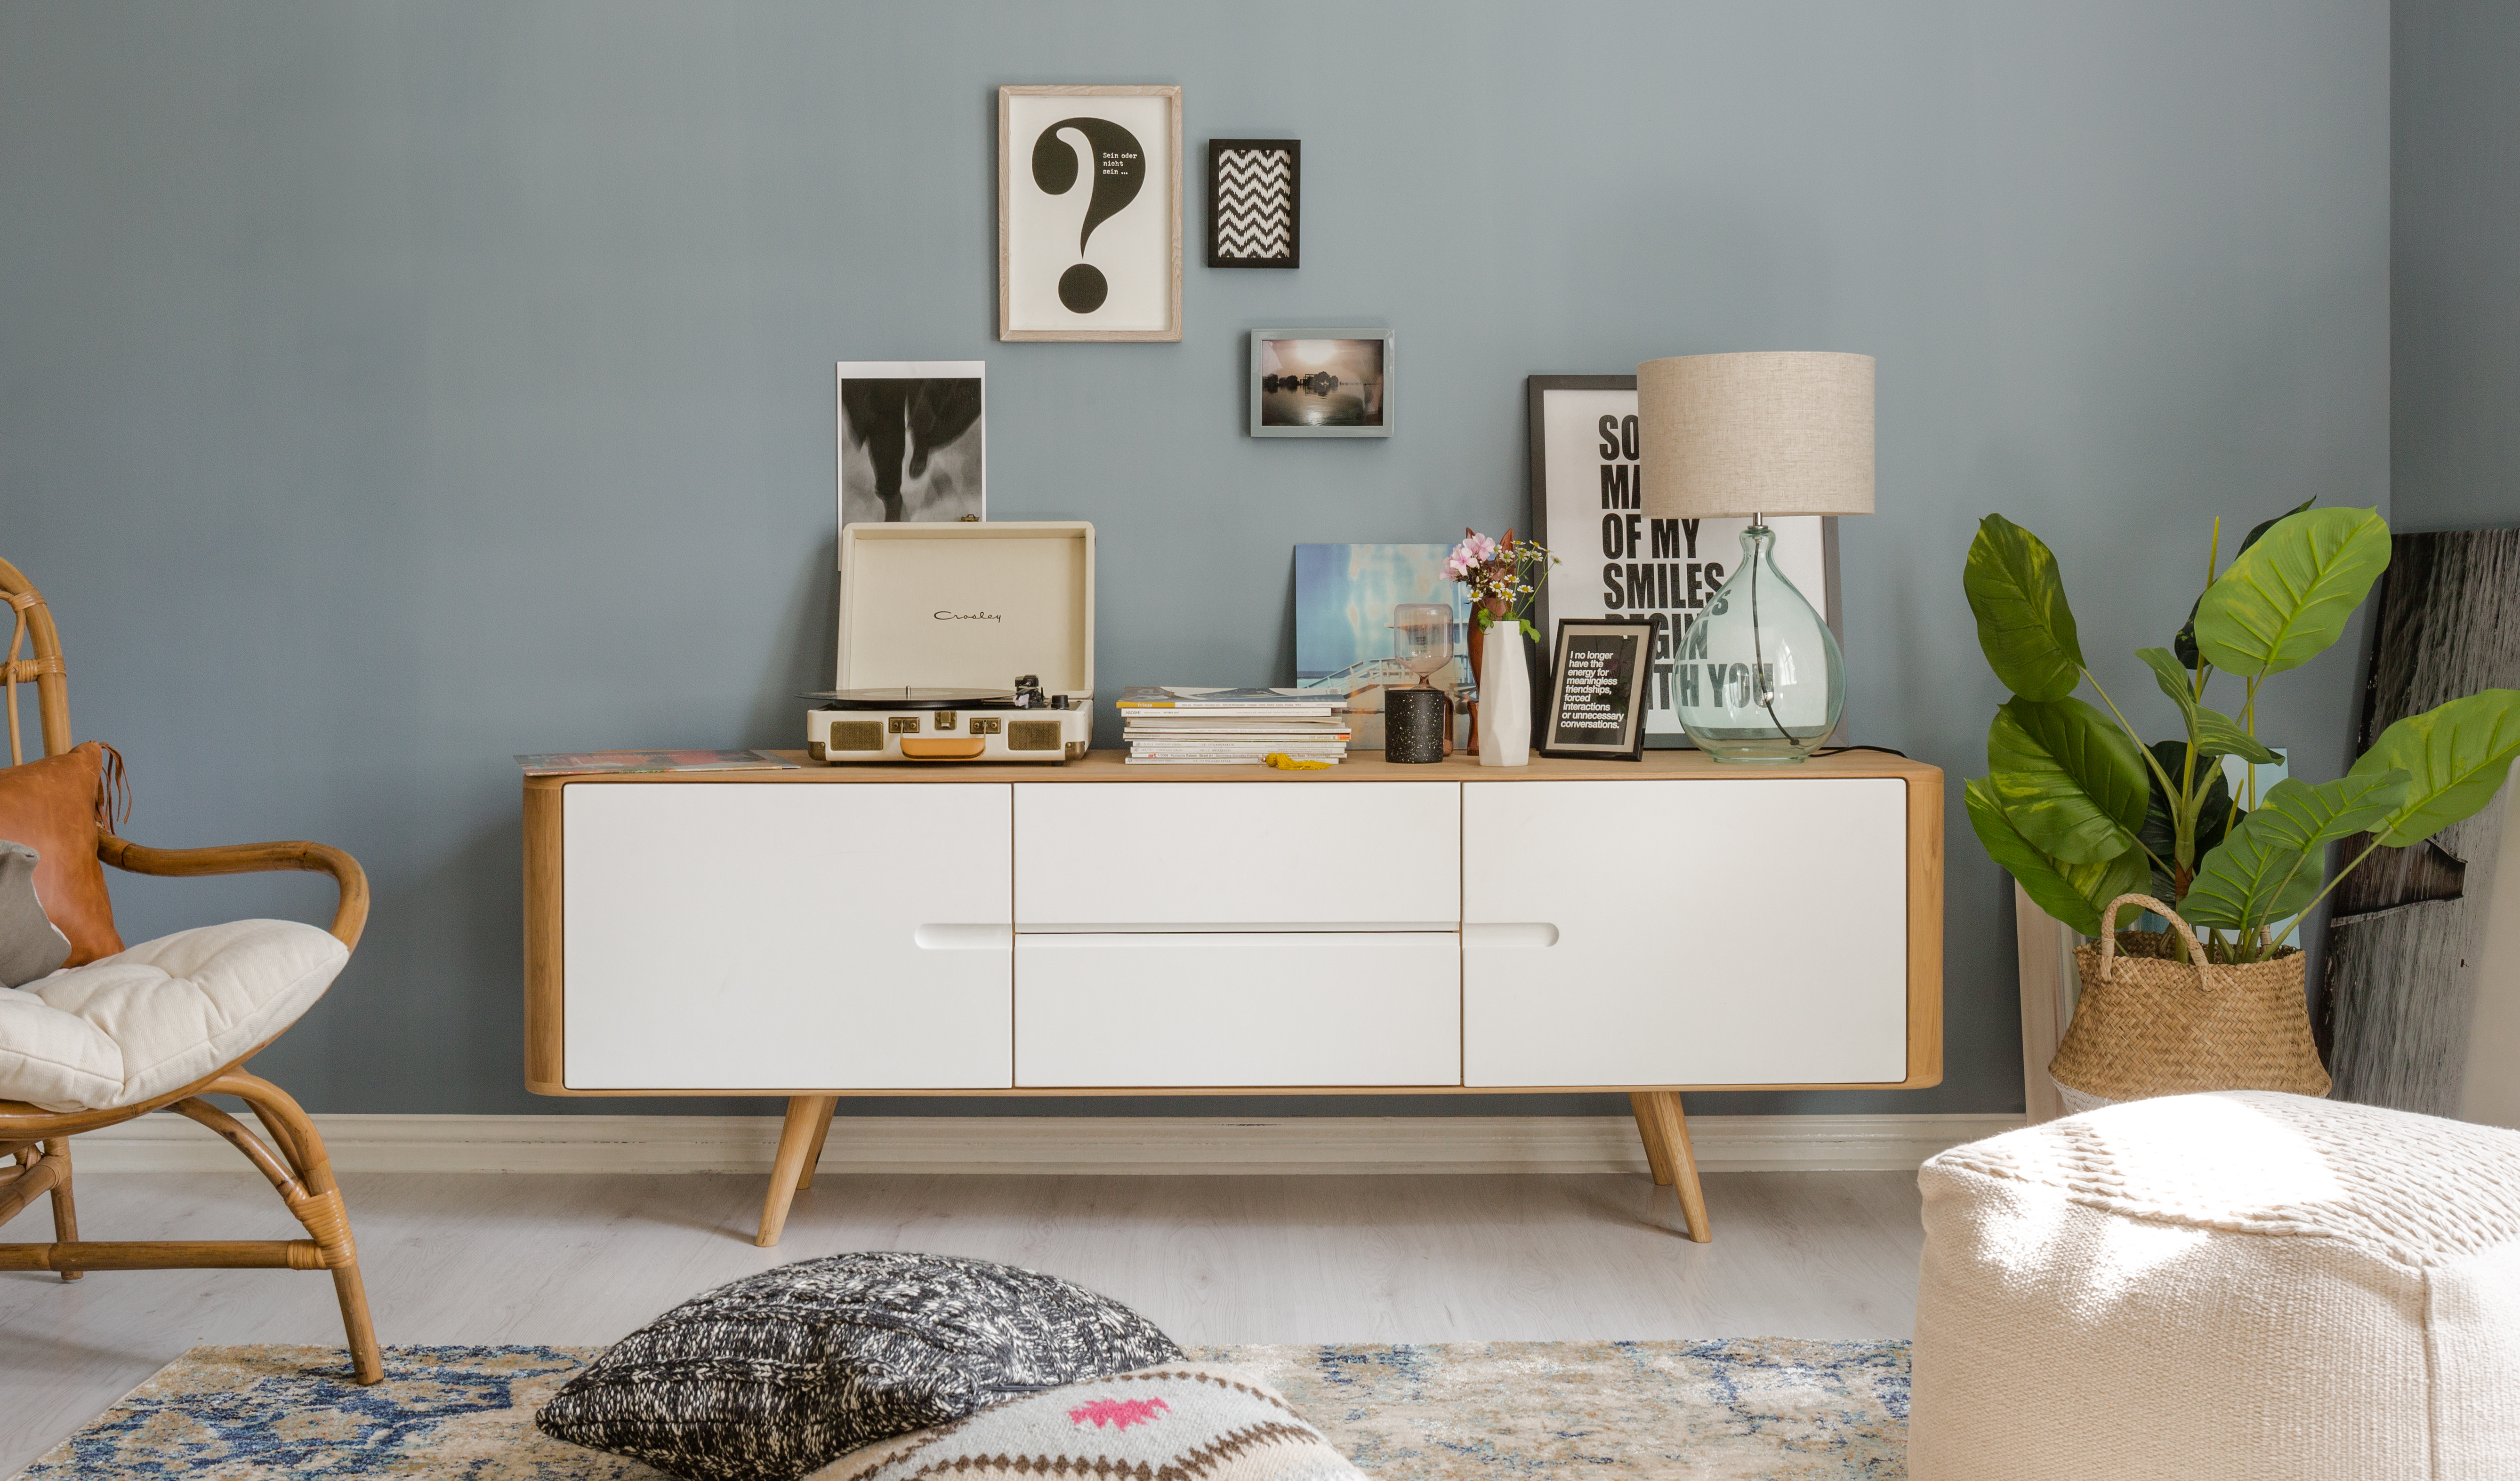 Home24 Scandinavian Style Furniture Mindsparkle Mag